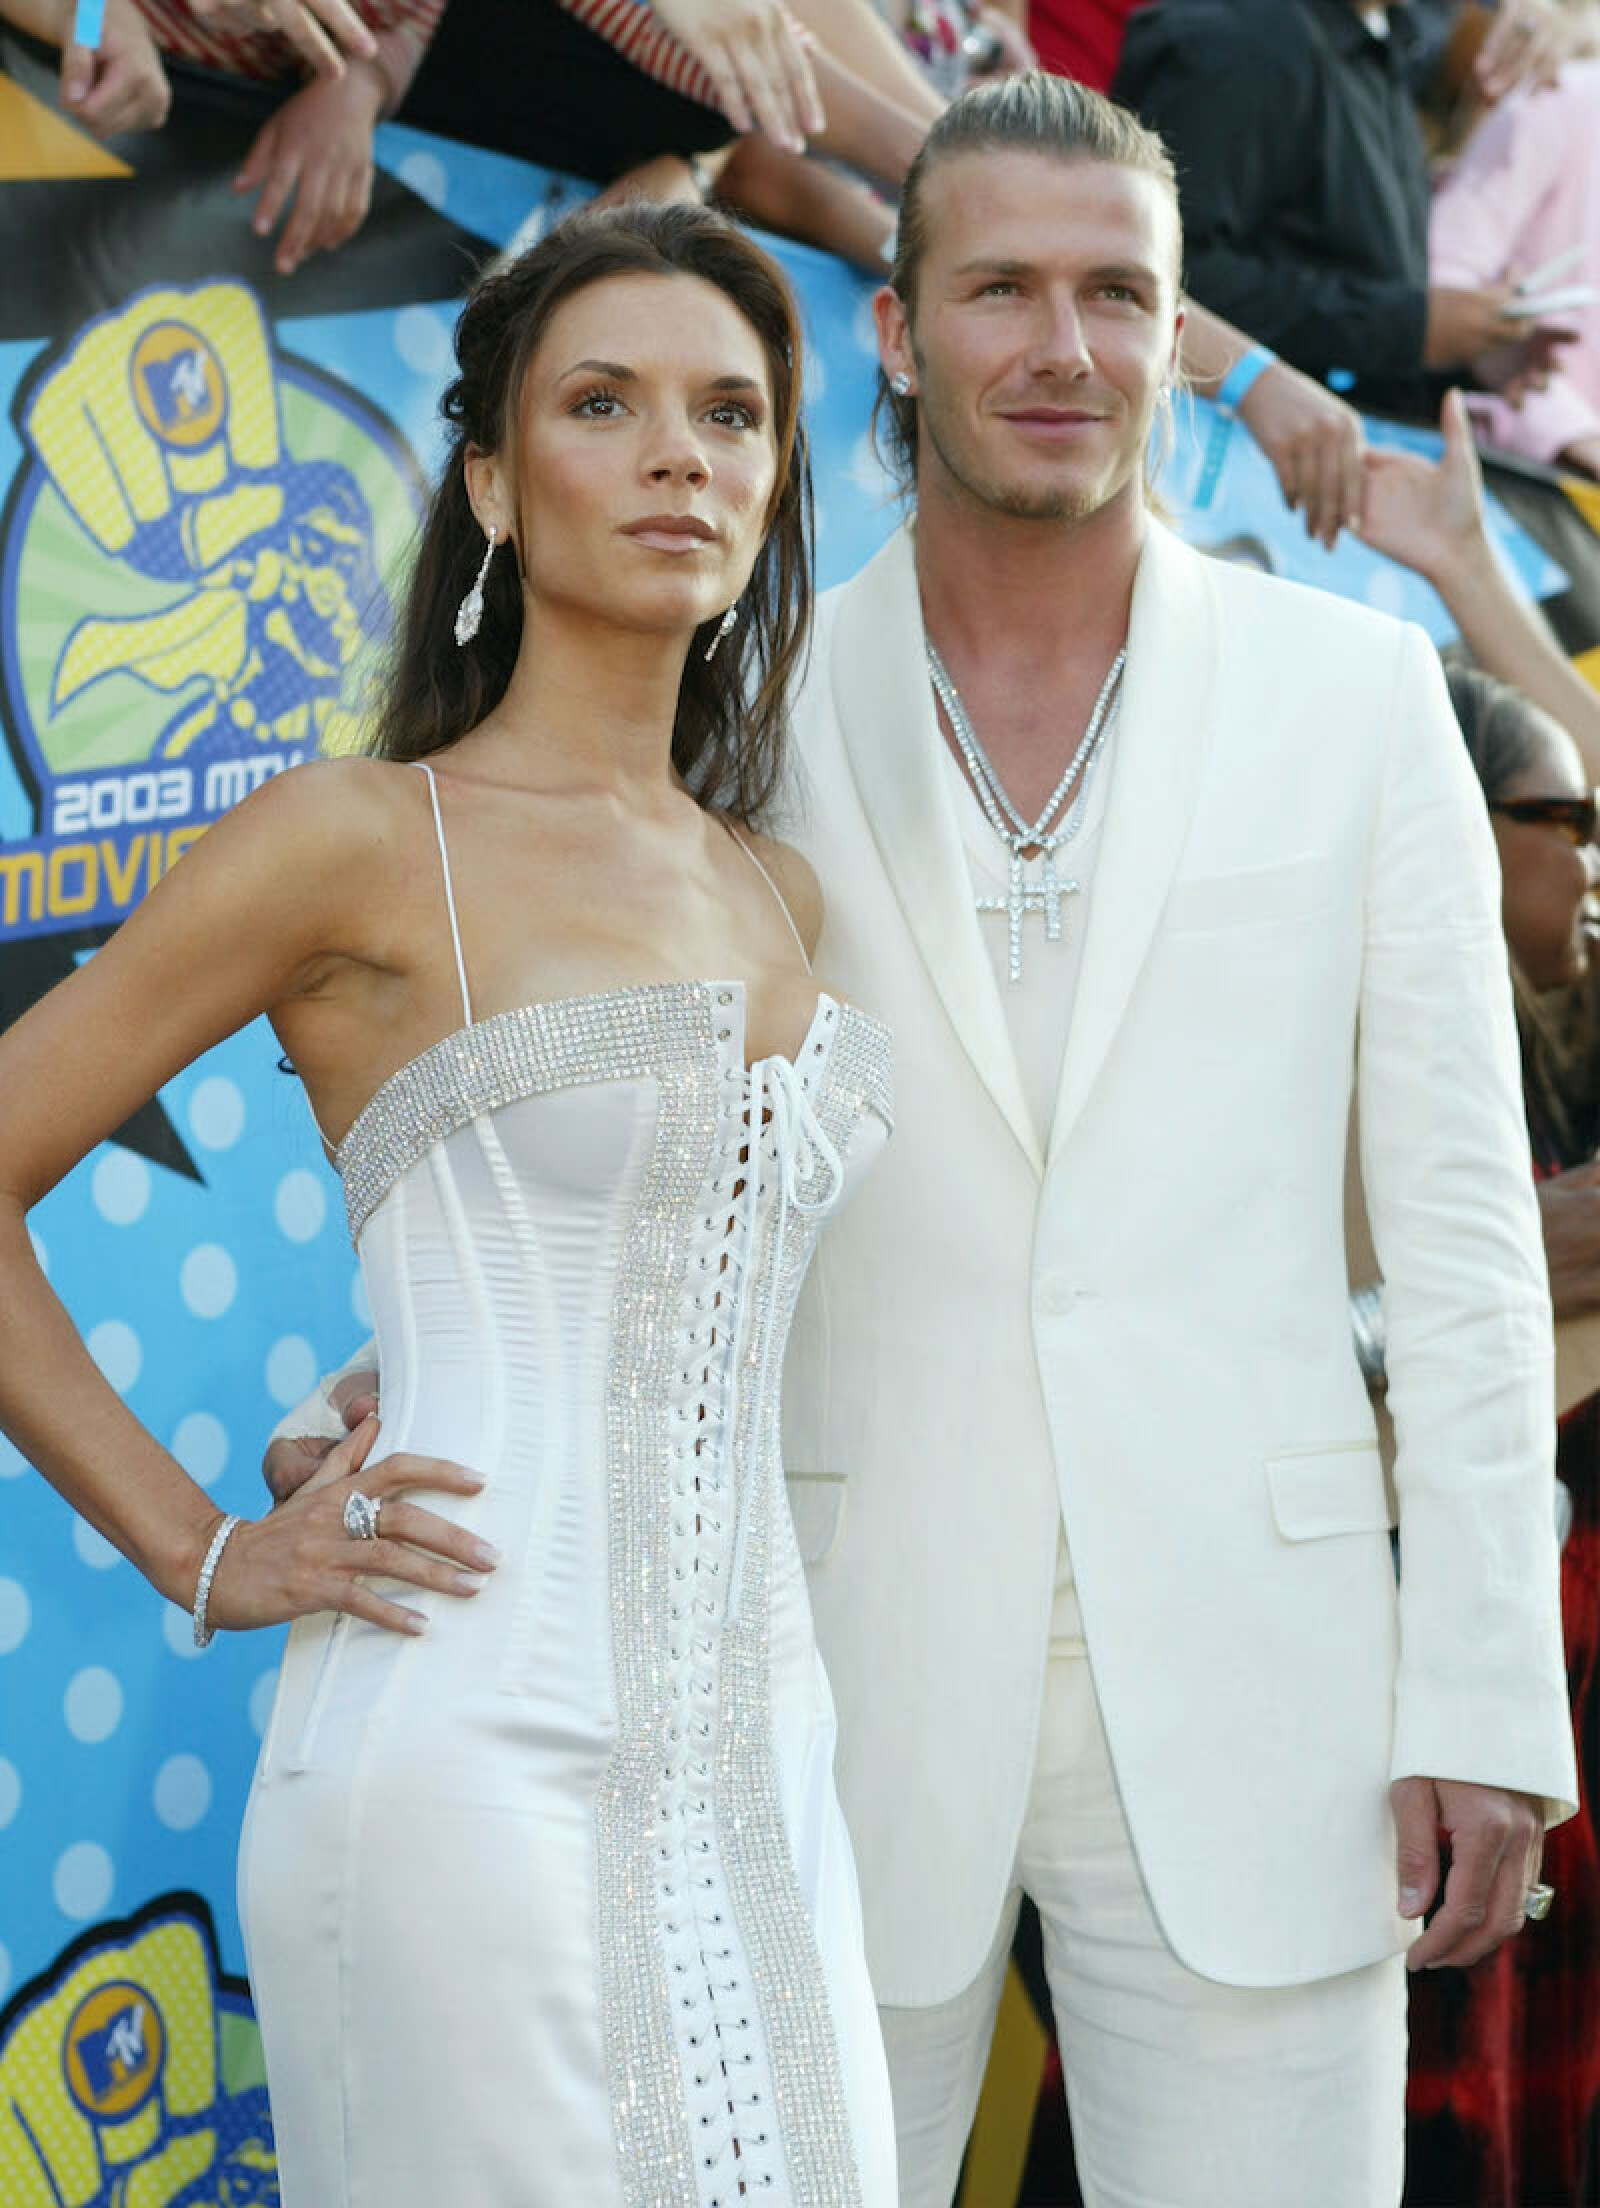 The 2003 MTV Movie Awards - Arrivals